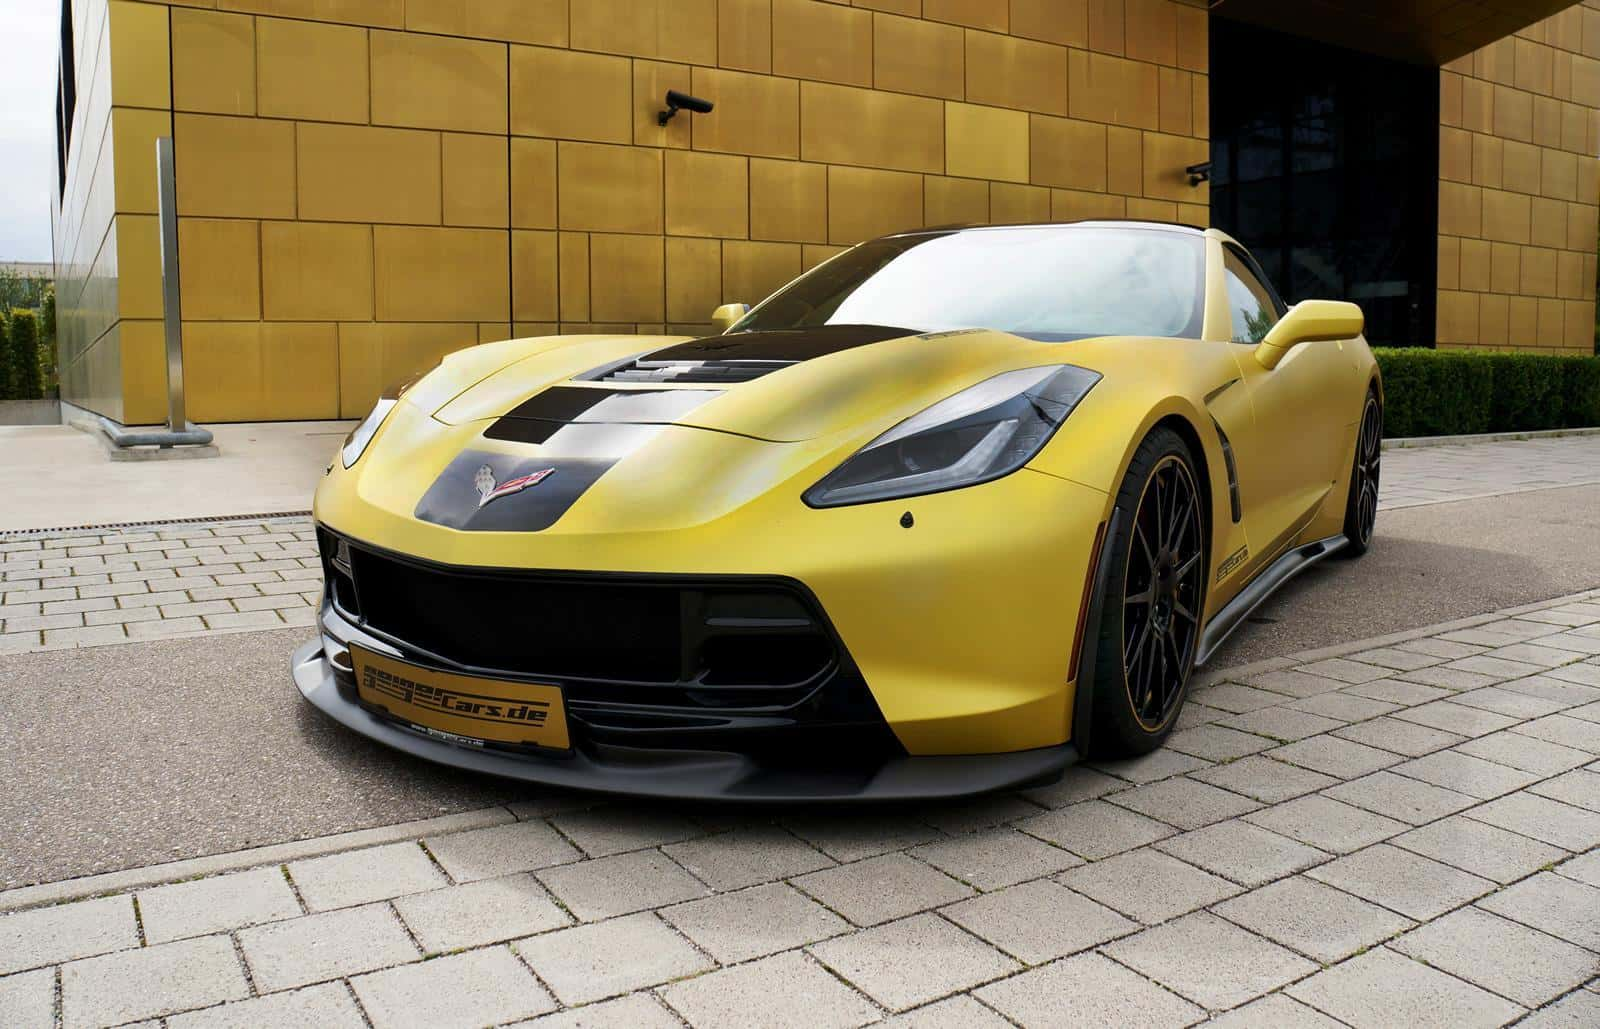 Chevrolet Corvette C7 Stingray Modification By Geigercars